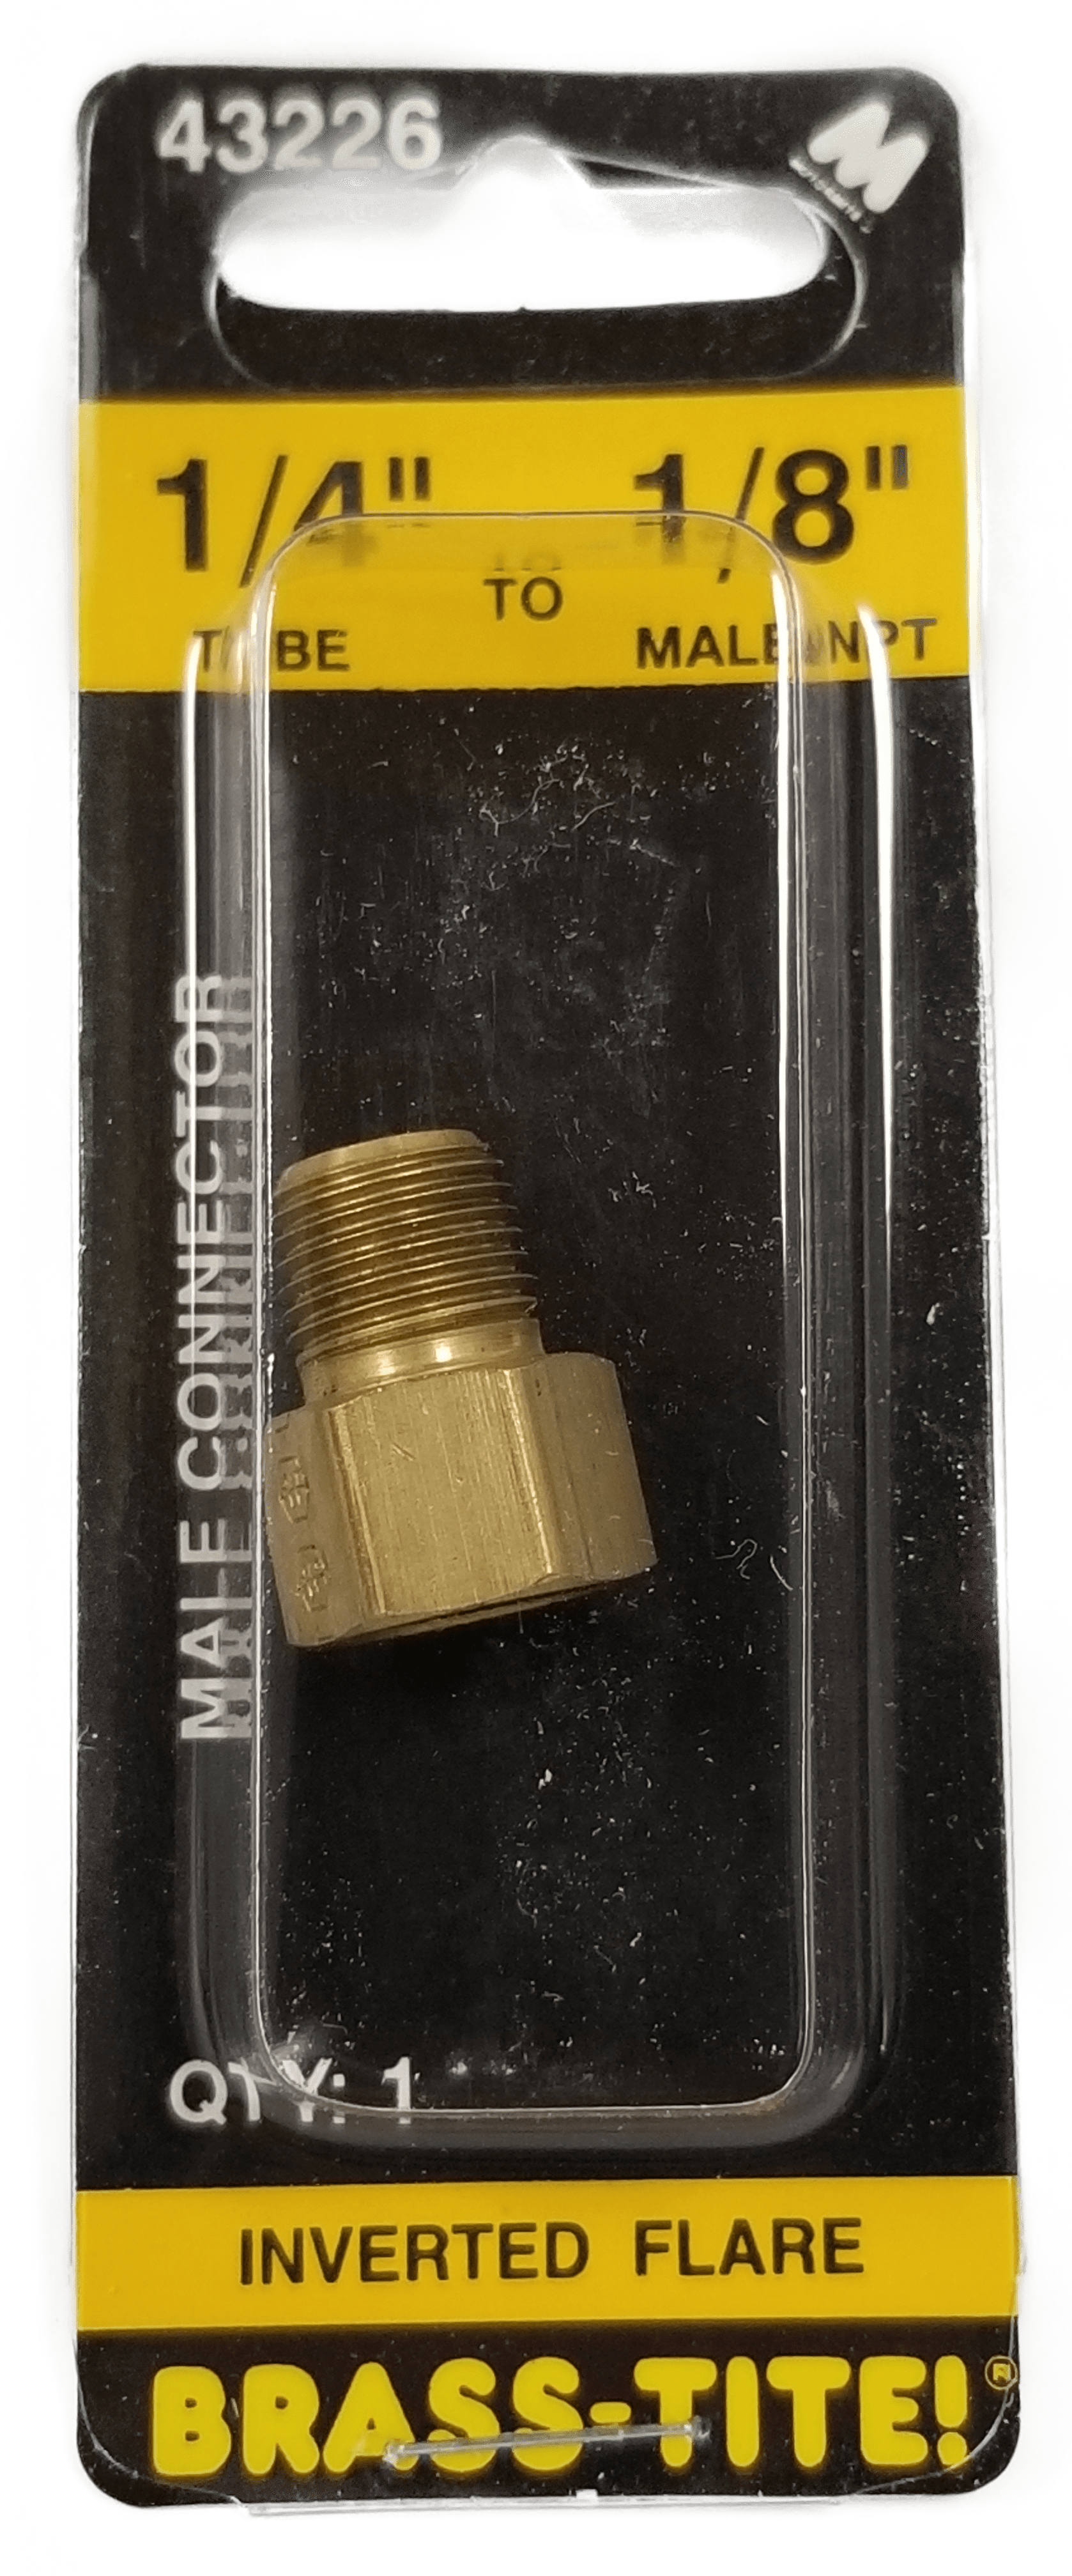 "07443226 - 1/4"" To 1/8"" Inverted Flare Connector (Brass)"